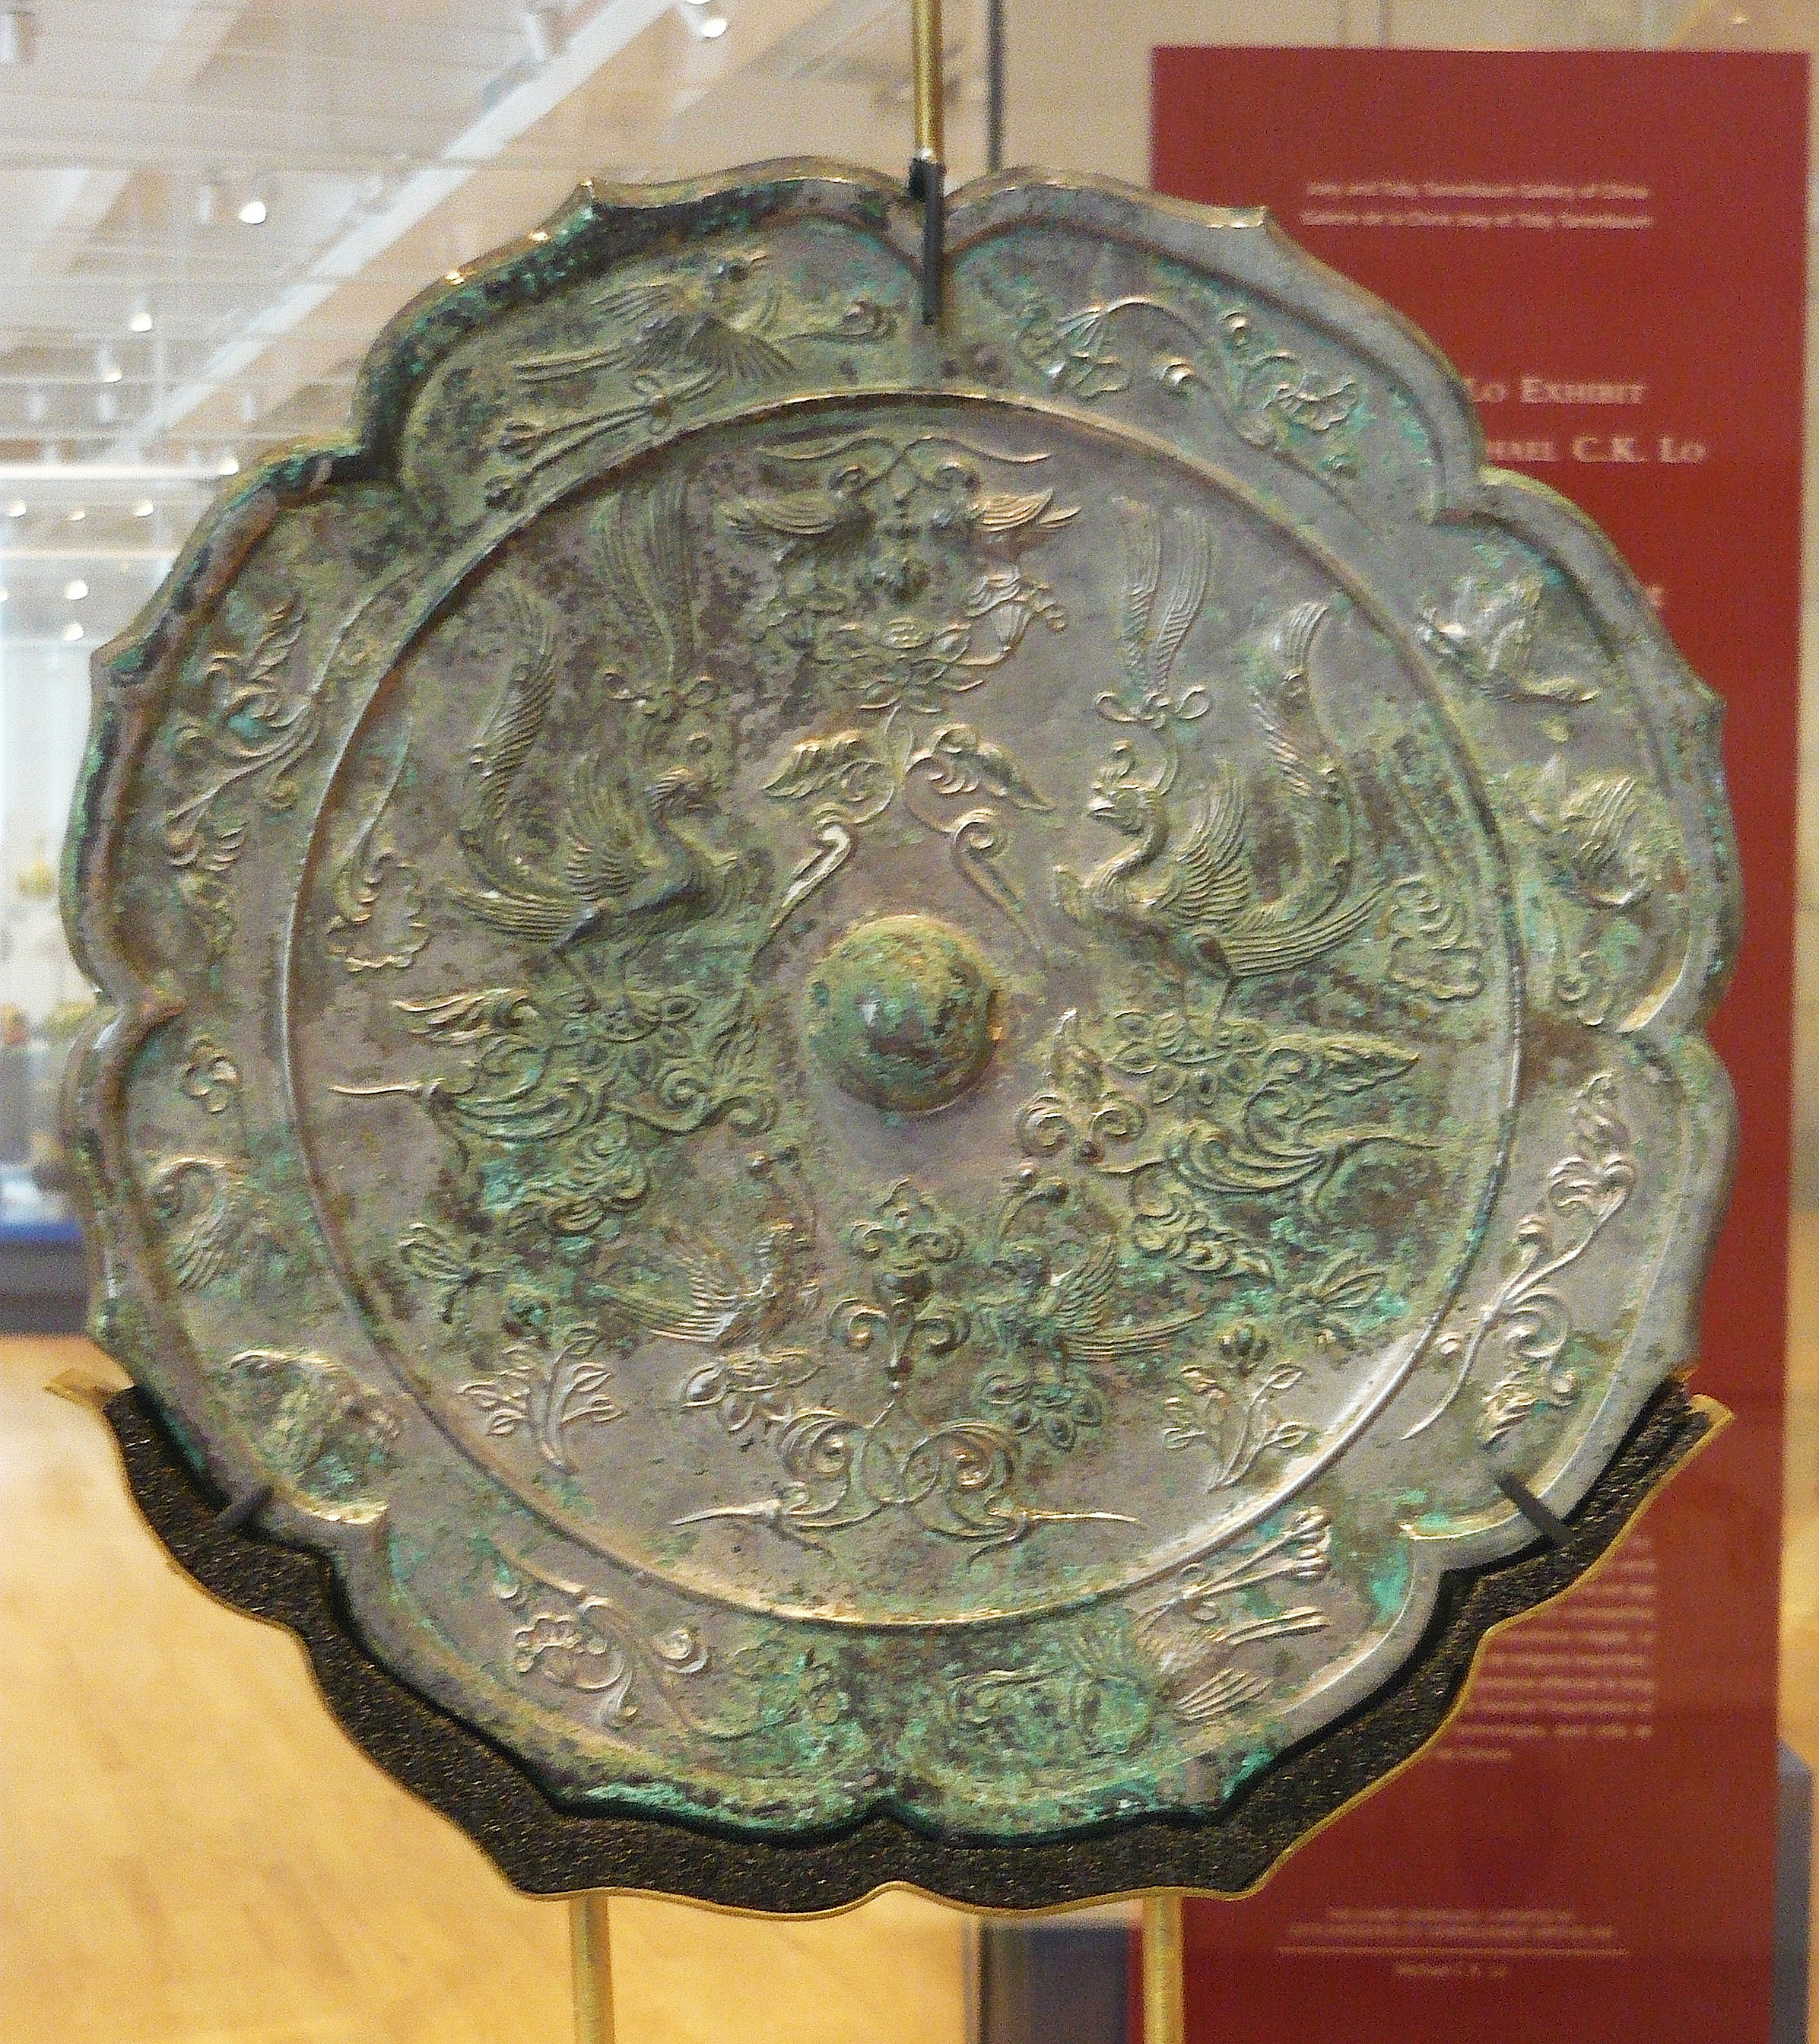 Chinese bronze mirror with phoenix motif illustration ancient this chinese bronze mirror with a phoenix motif dates from the tang dynasty 618 907 ce the phoenix was the female counterpart to the male dragon in biocorpaavc Choice Image